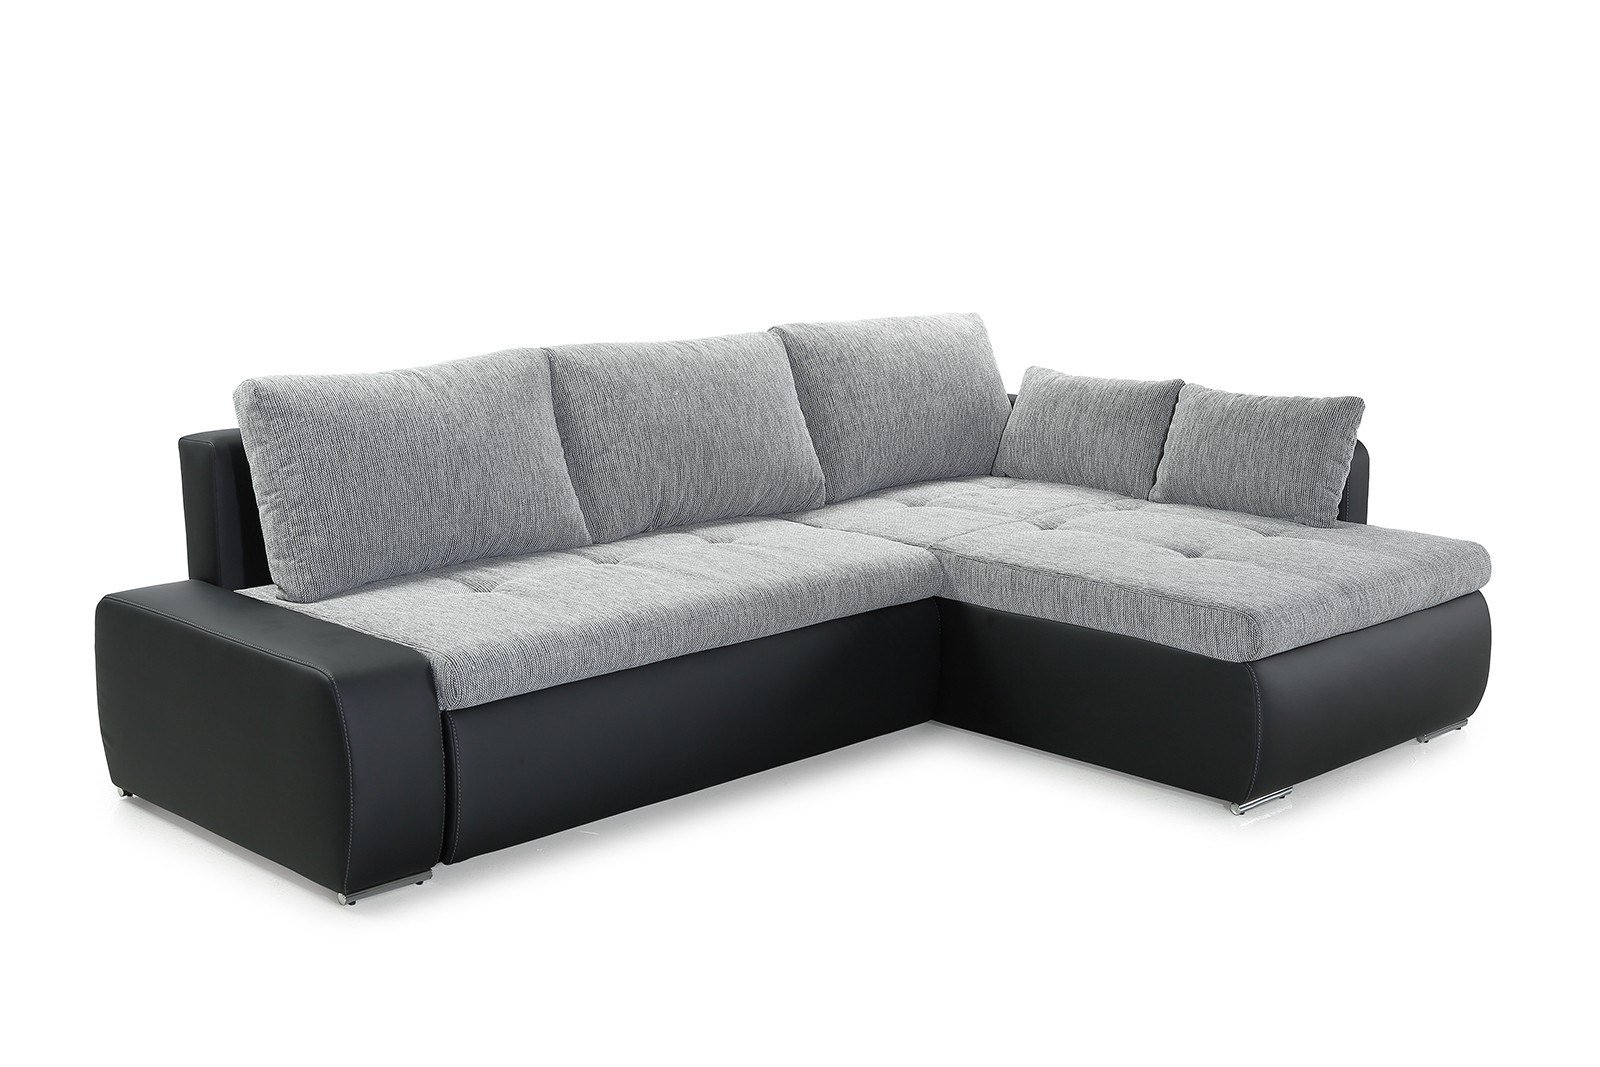 jockenh fer amberg ecksofa grau schwarz m bel letz ihr online shop. Black Bedroom Furniture Sets. Home Design Ideas